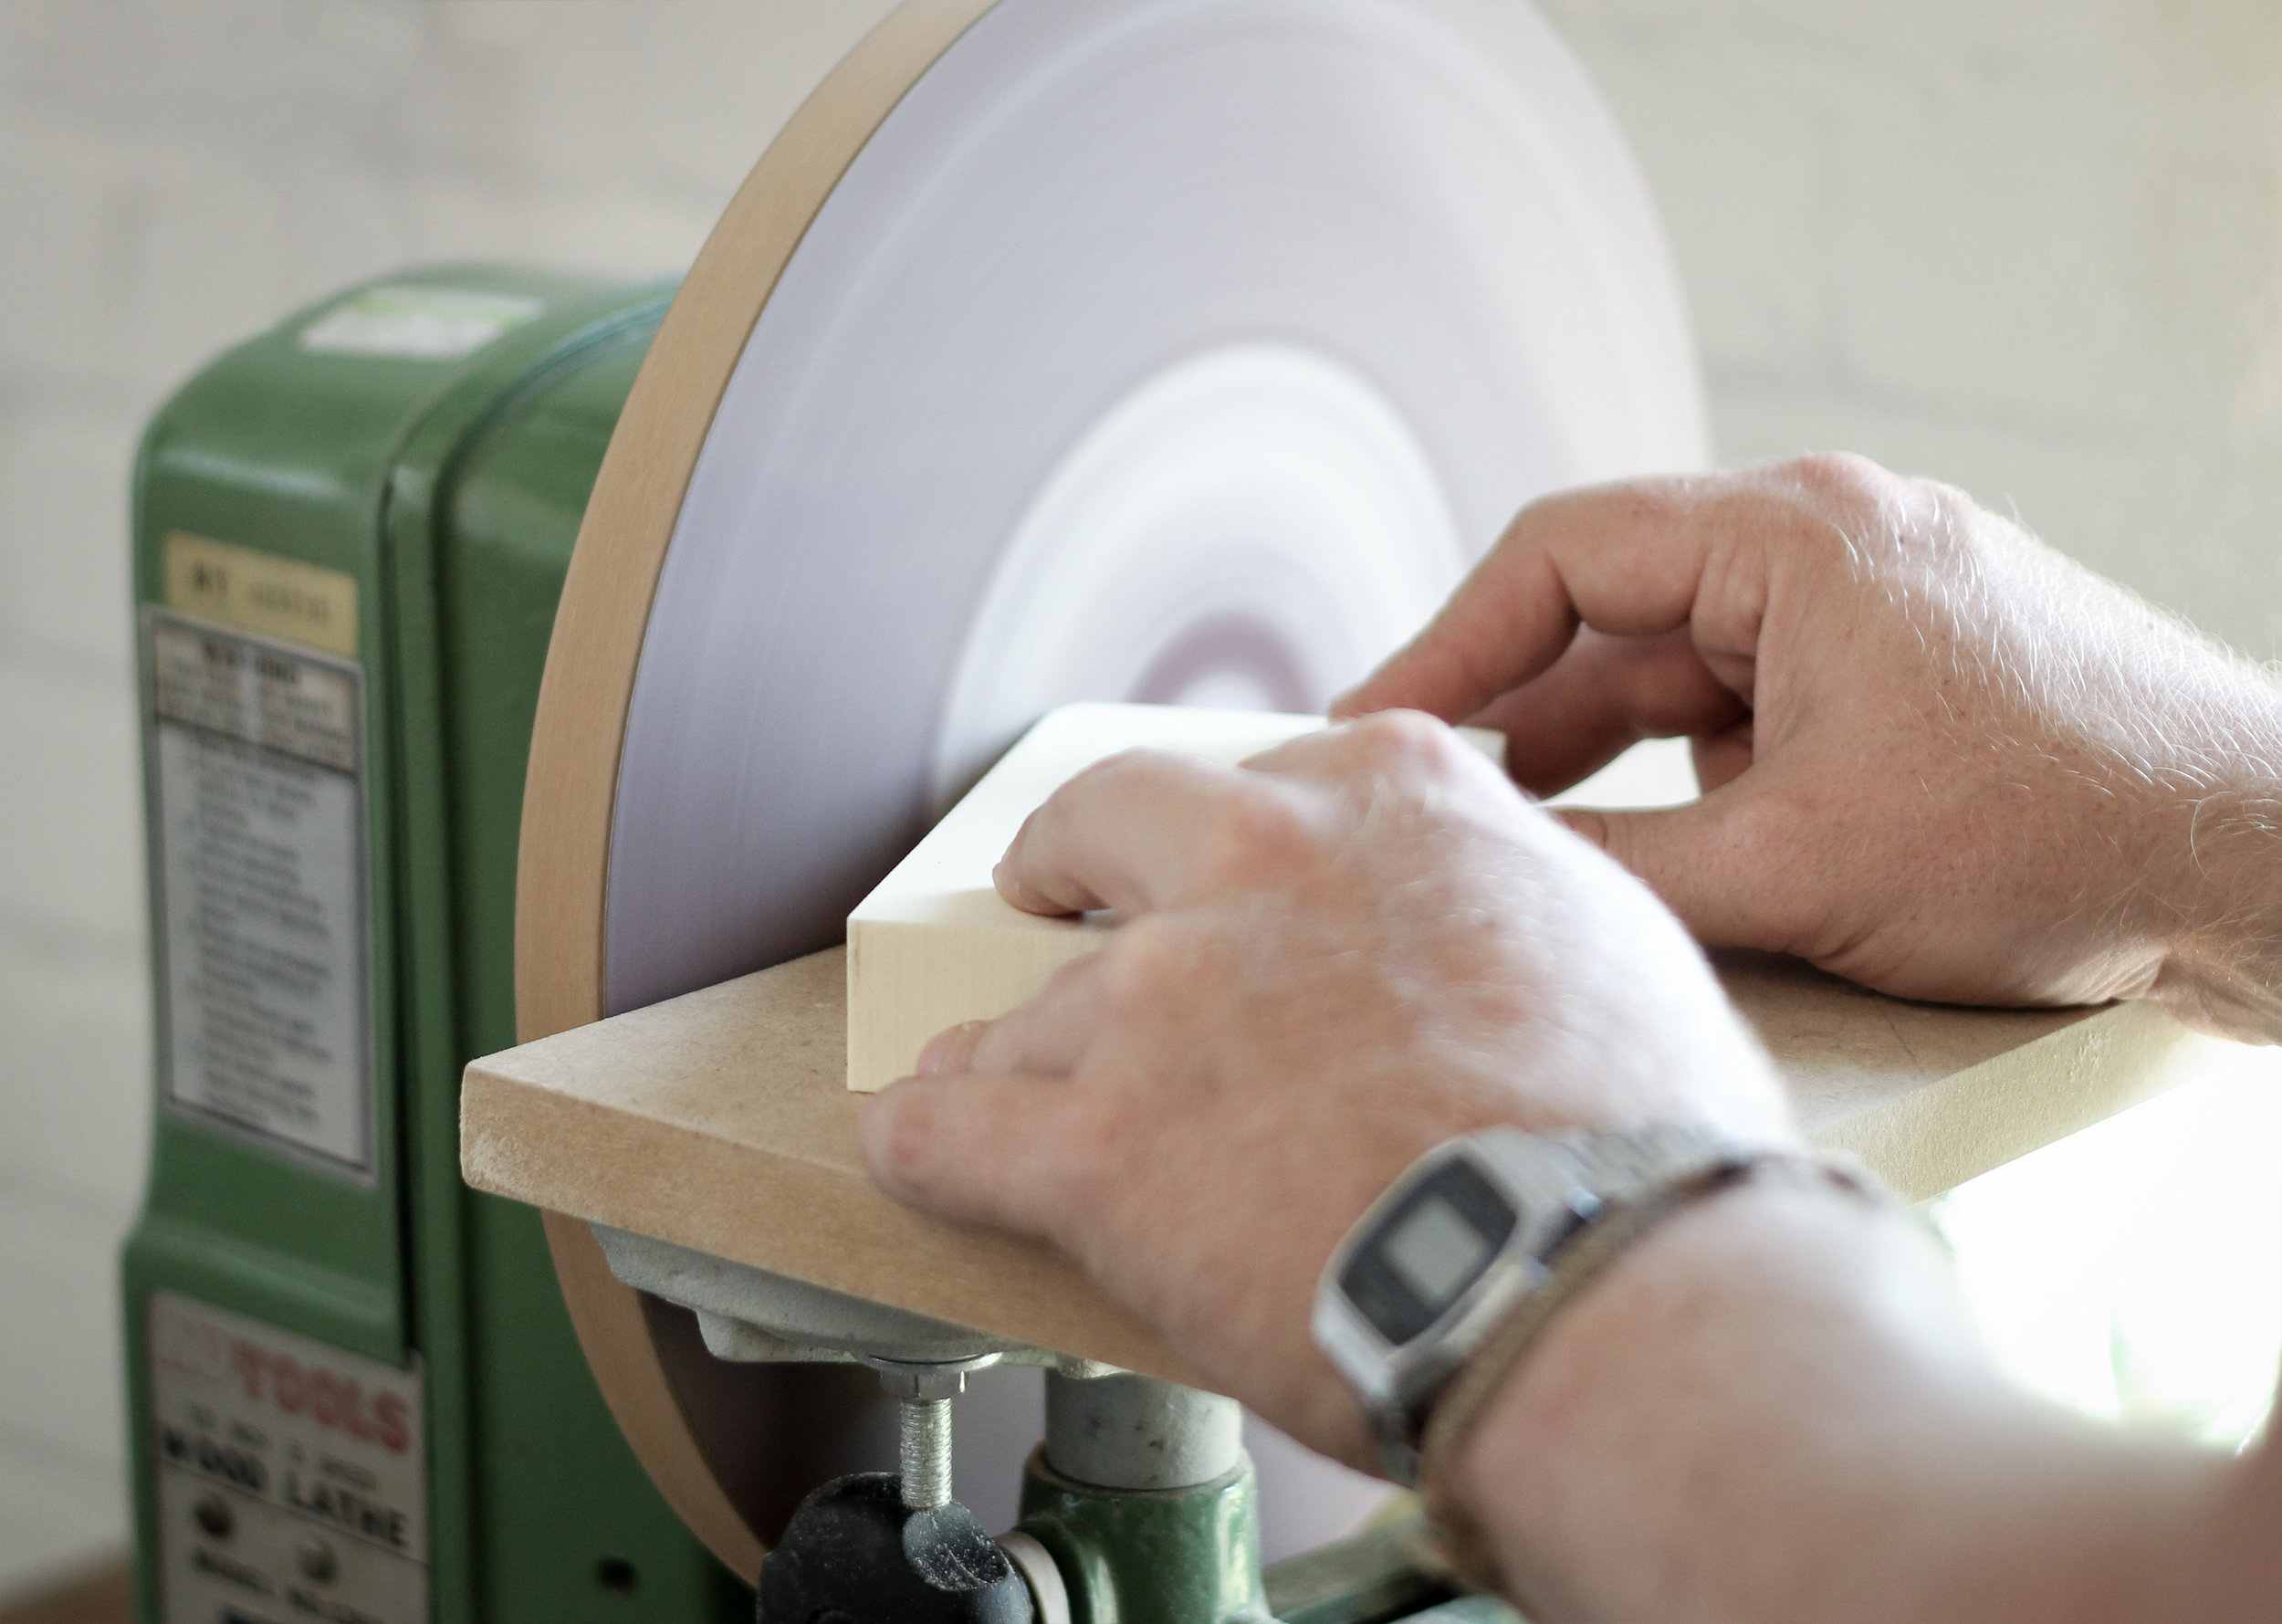 Production of foam prototypes in fully equipped workshop